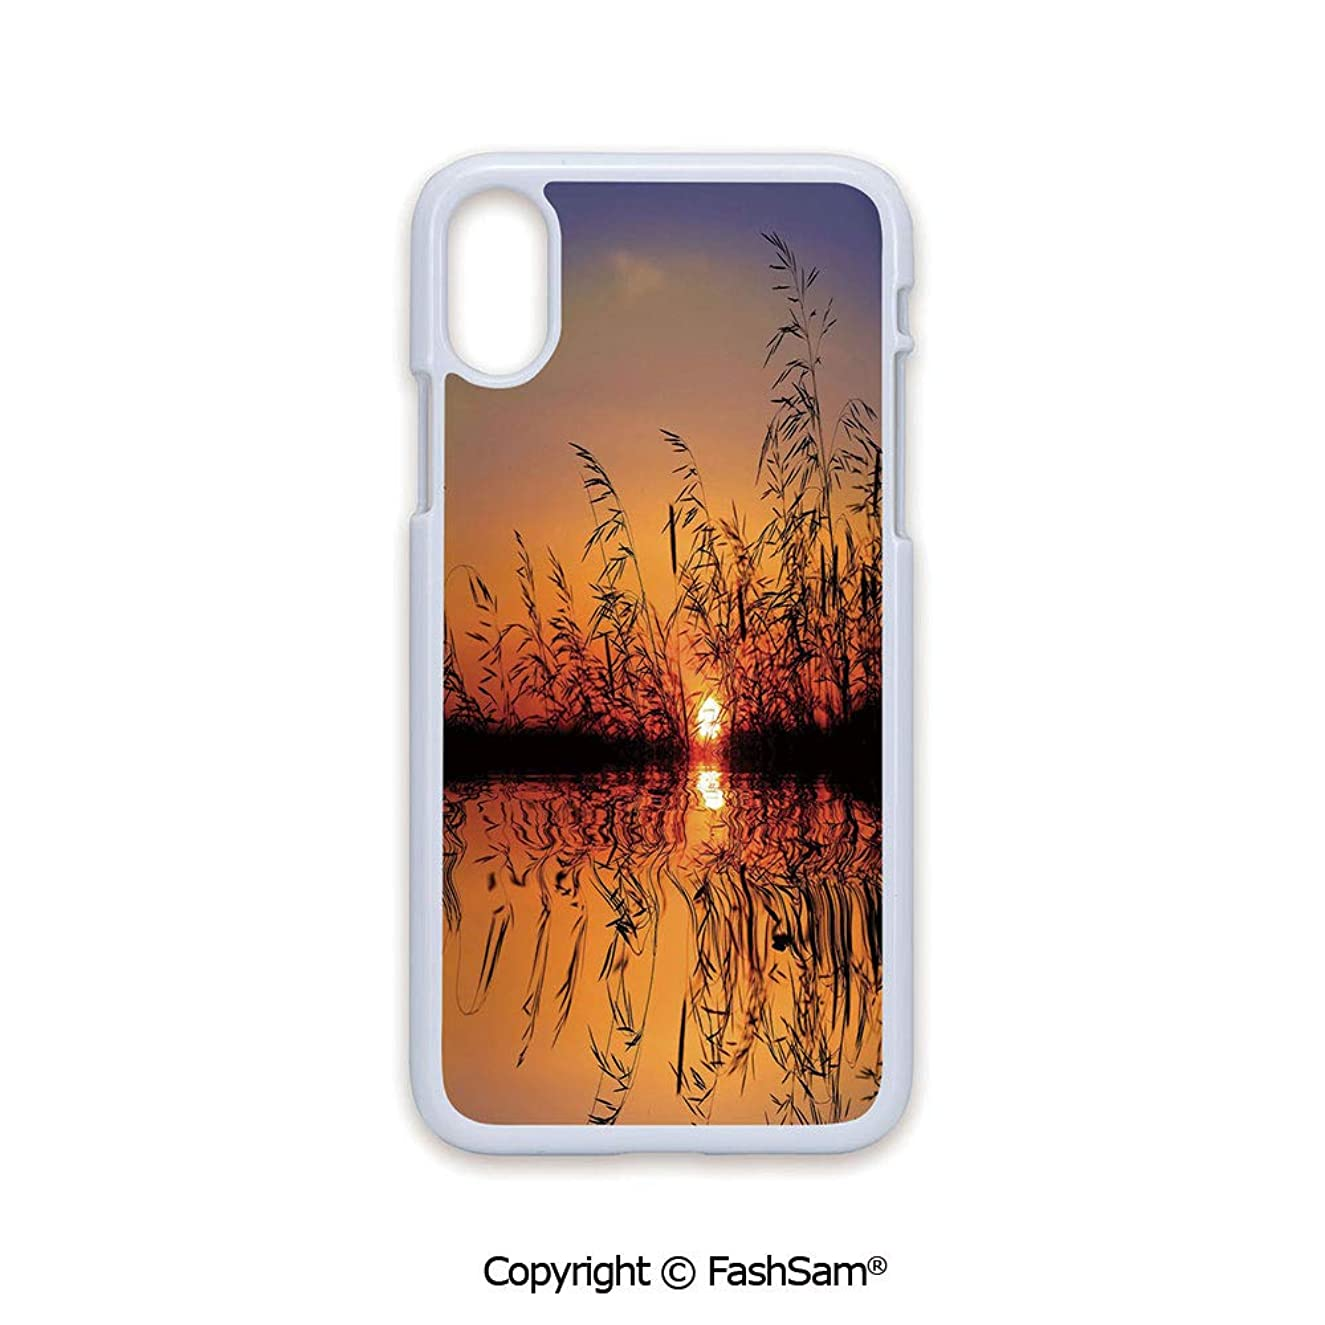 Plastic Rigid Mobile Phone case Compatible with iPhone X Black Edge Lake Sunset with Long Reeds Romantic Botanical Ombre Like Scenery Photo Image 2D Print Hard Plastic Phone Case